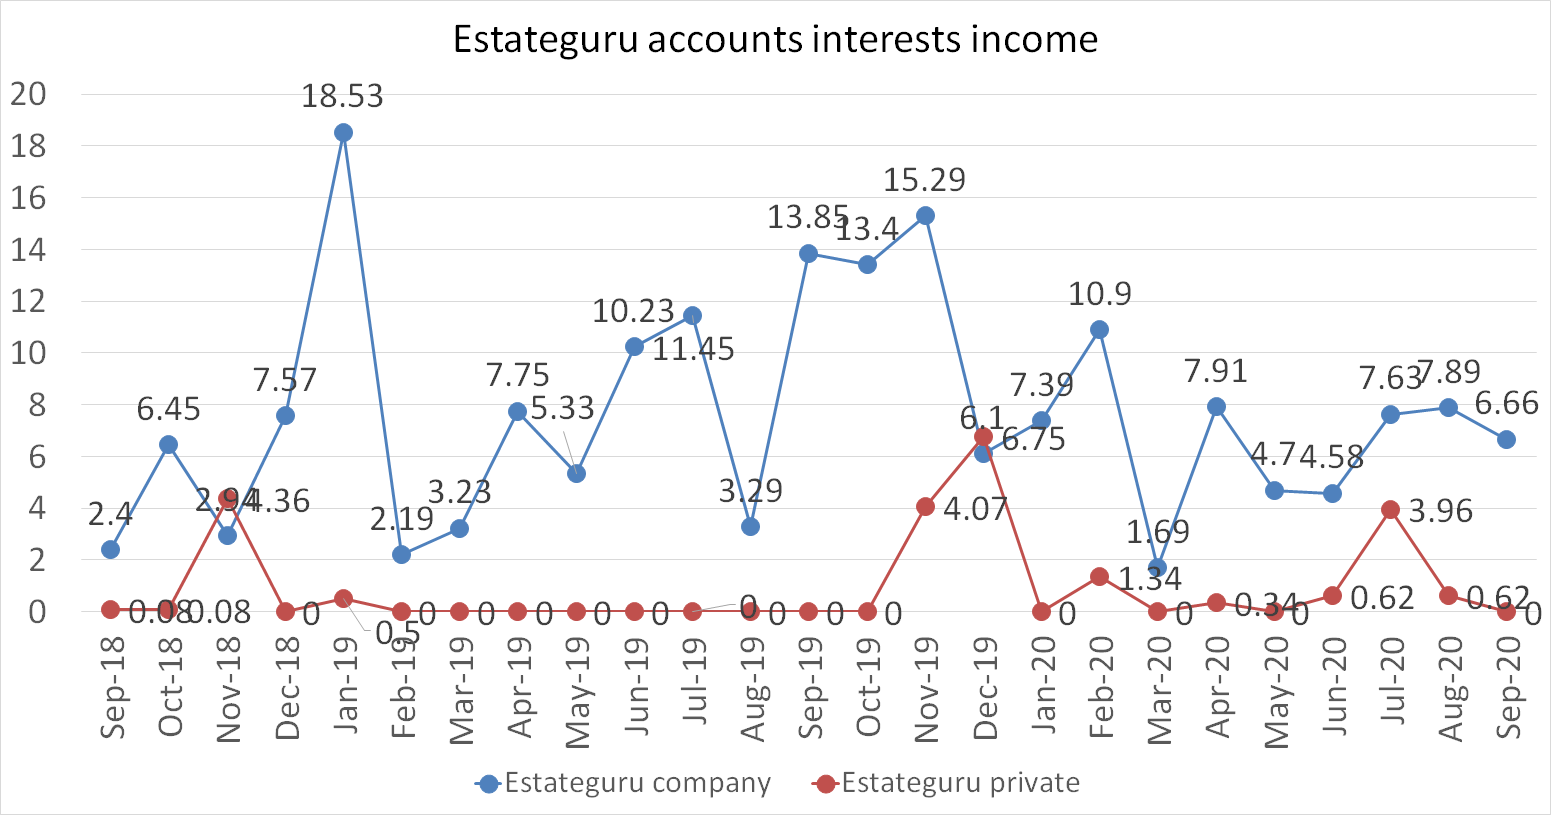 Estateguru accounts interrests income september 2020